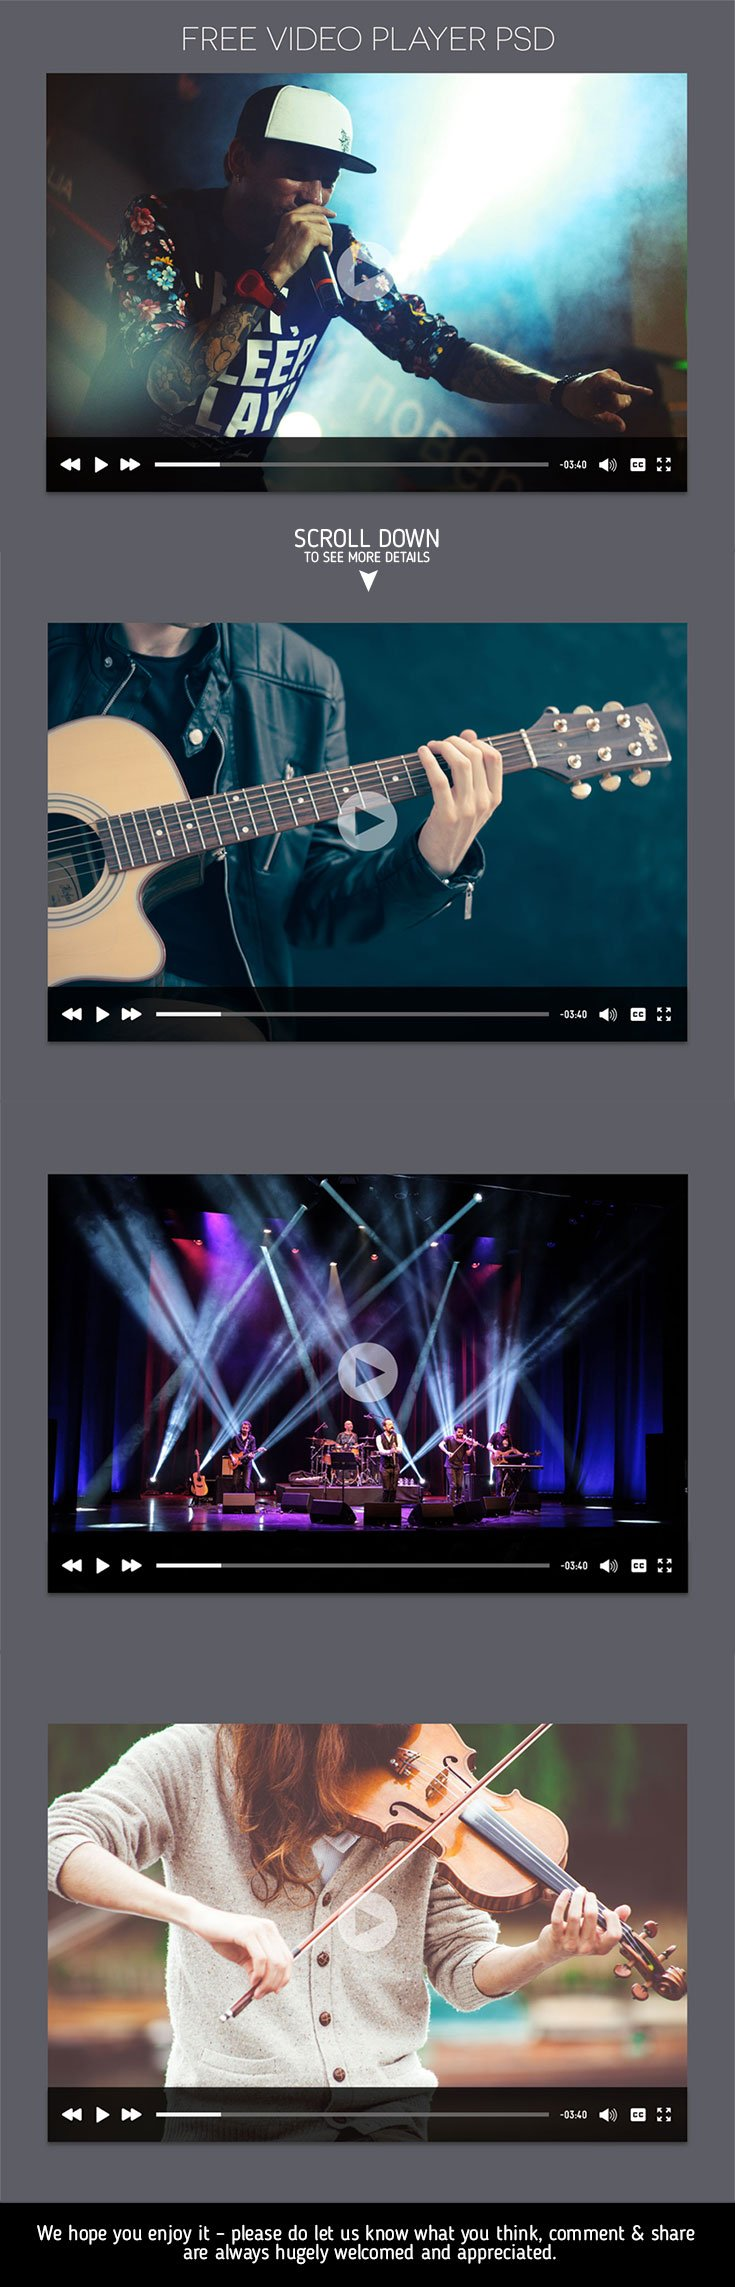 Introducing free video player #PSD , looks like similar to new #YouTube format and it can be used to create html version also.